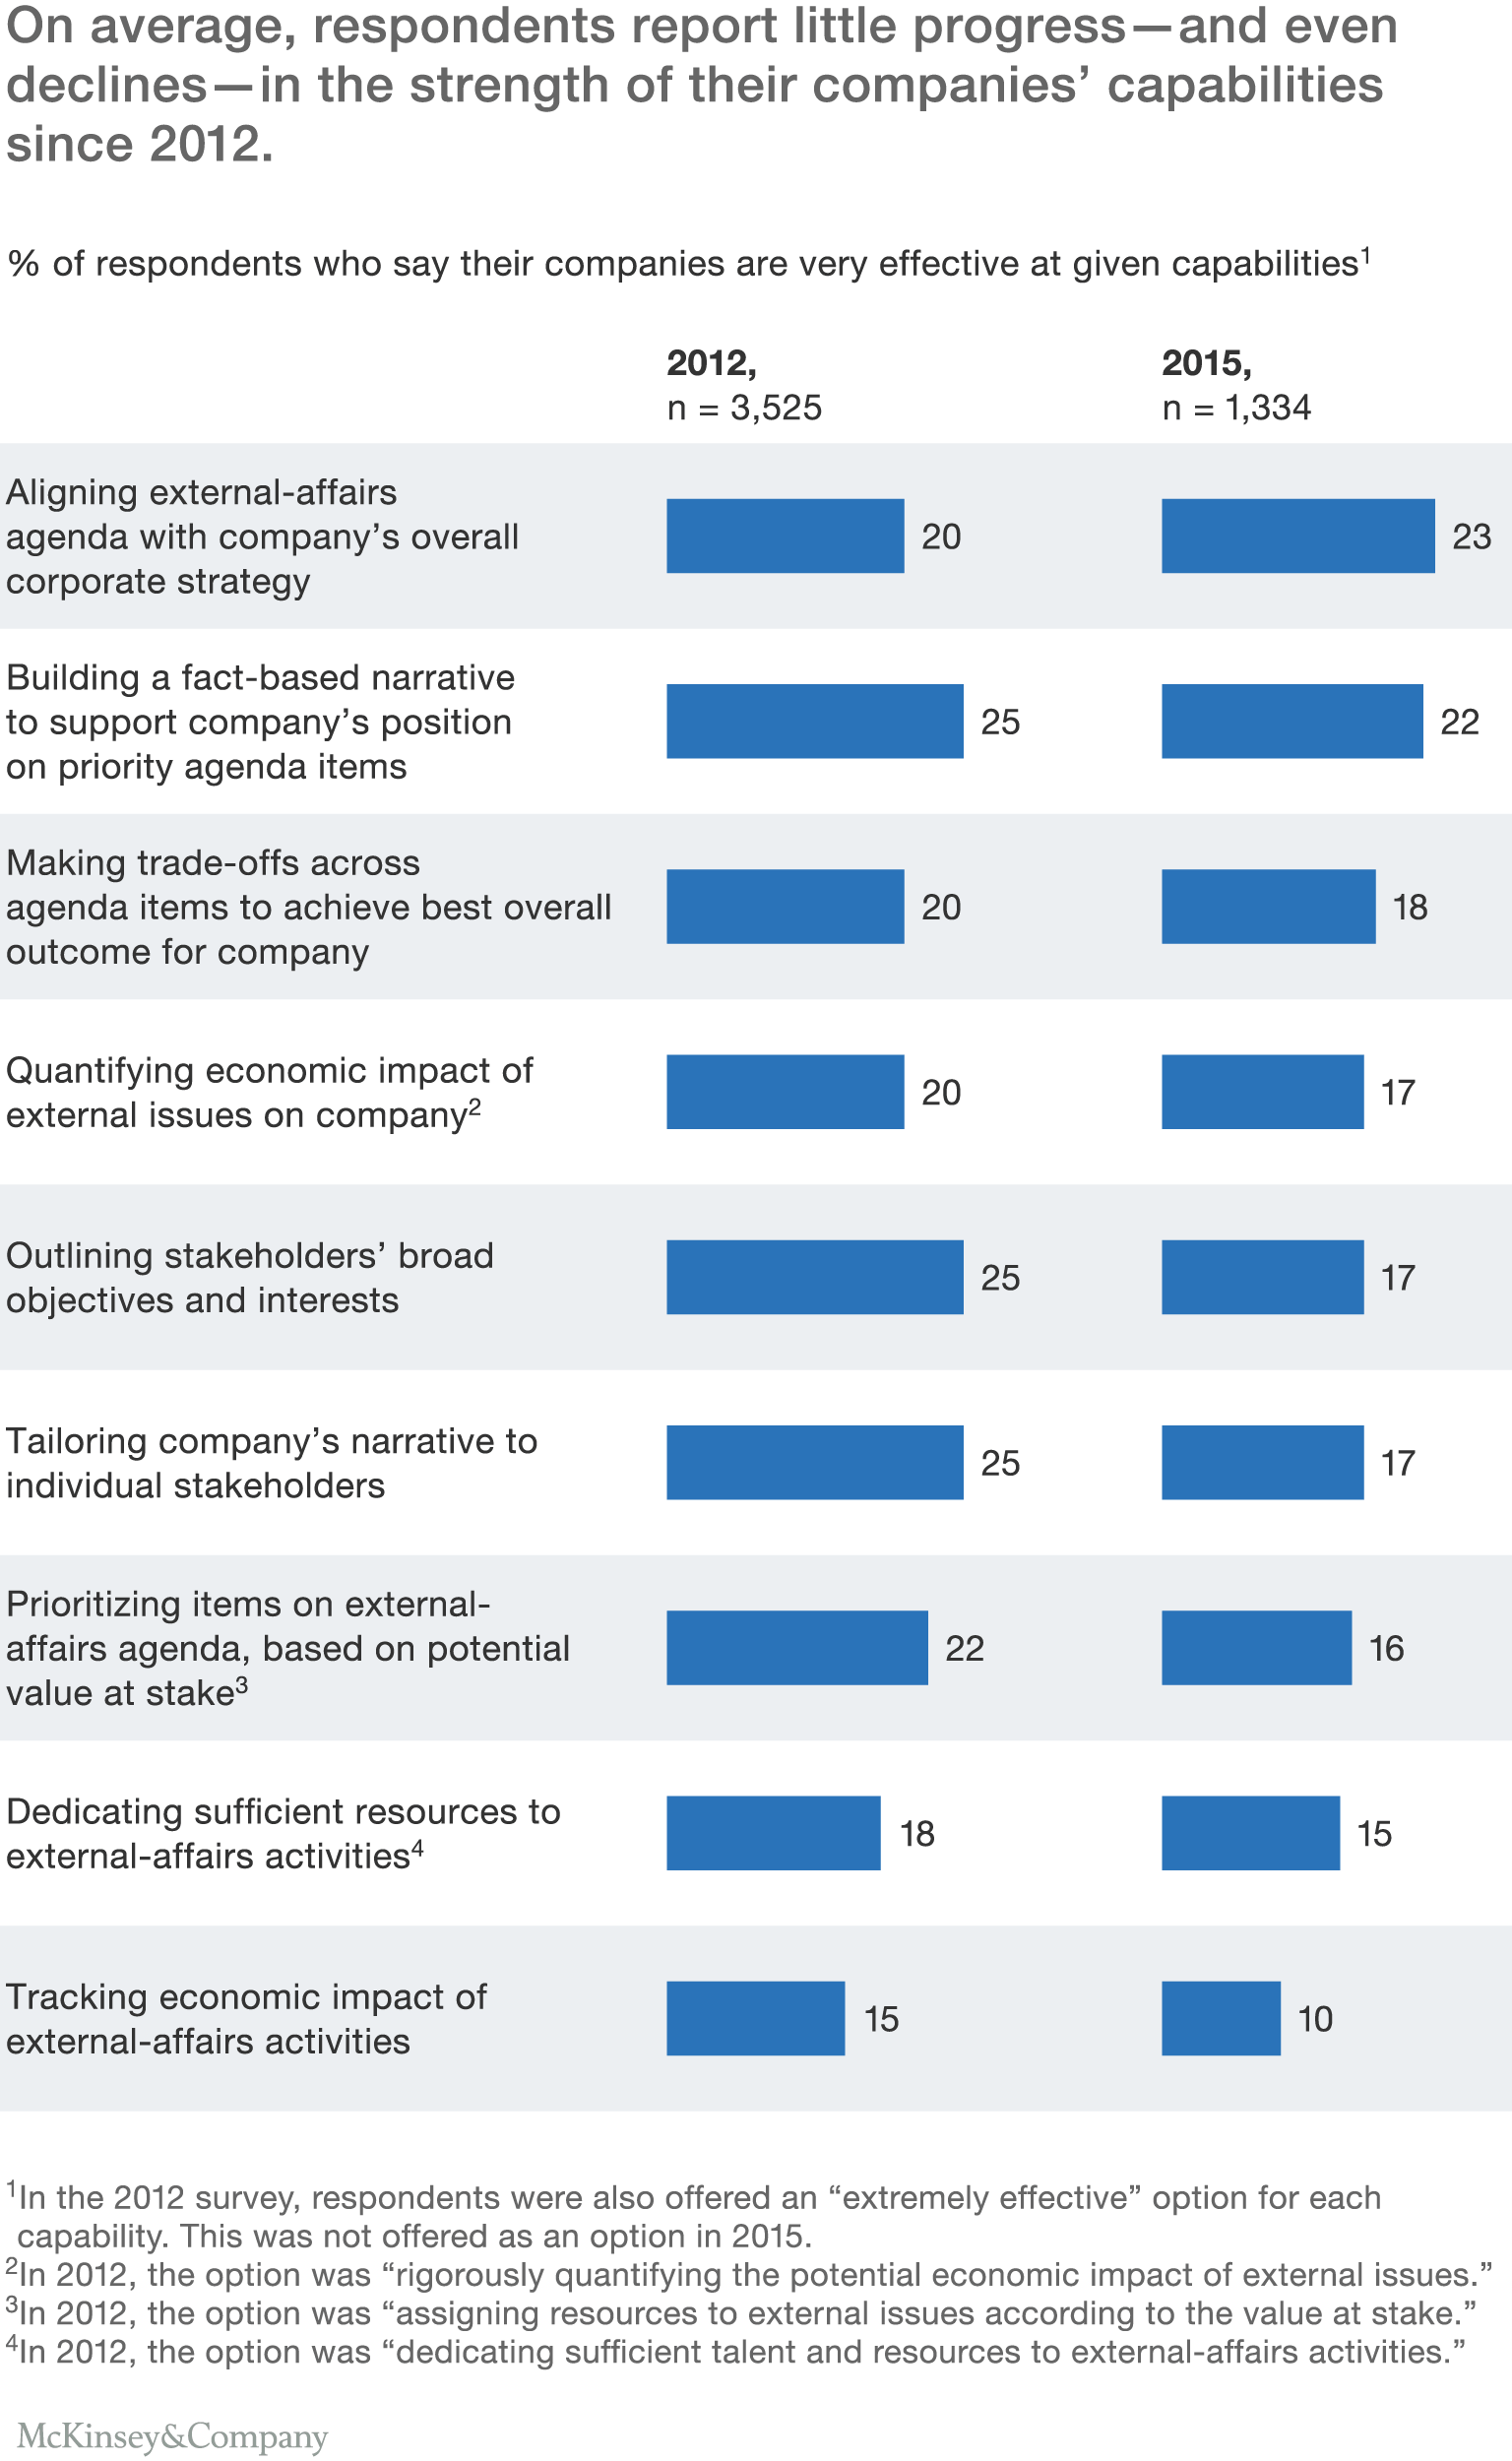 On Average, Respondents Report Little Progress—and Even Declines—in The  Strength Of